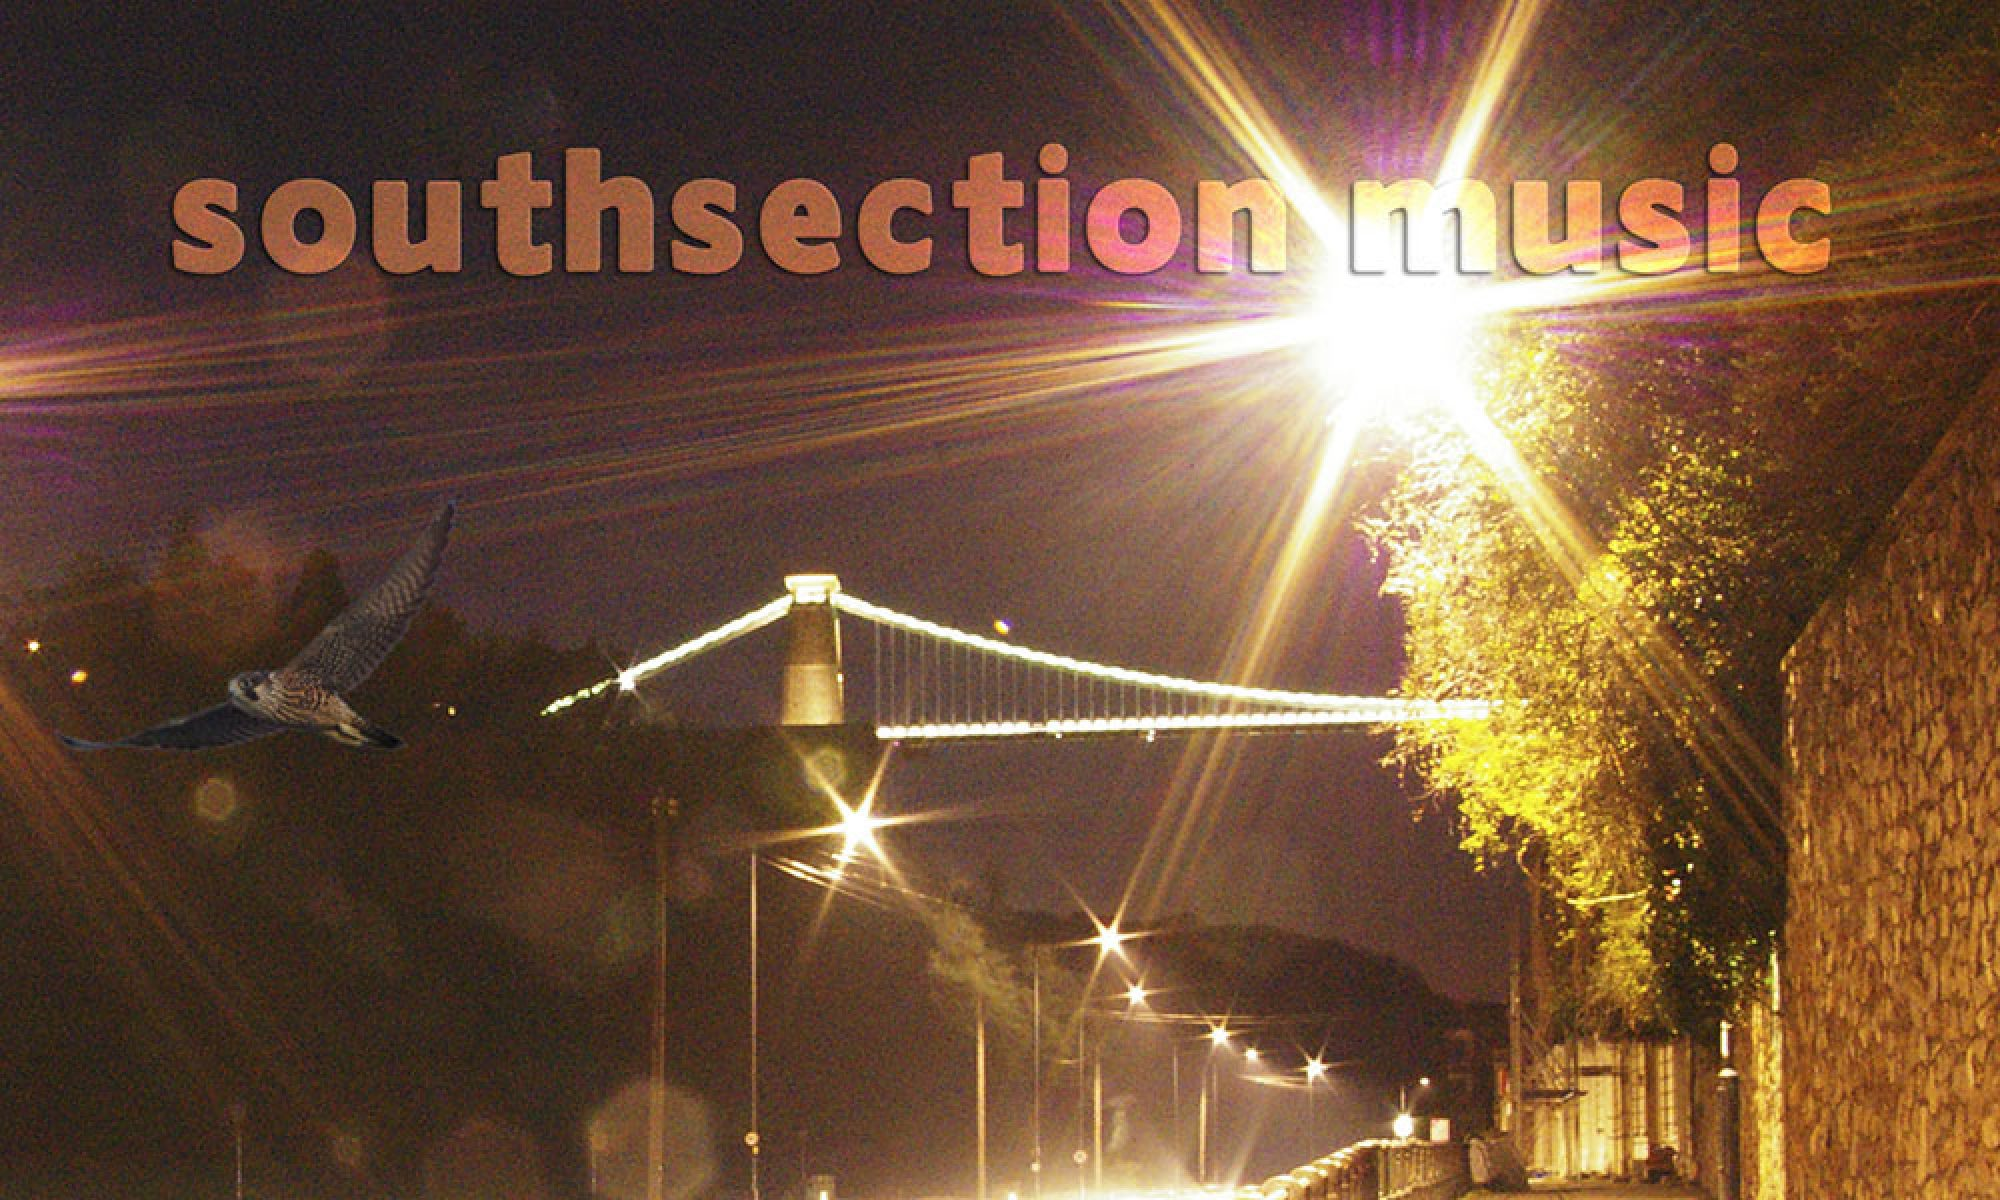 Southsection